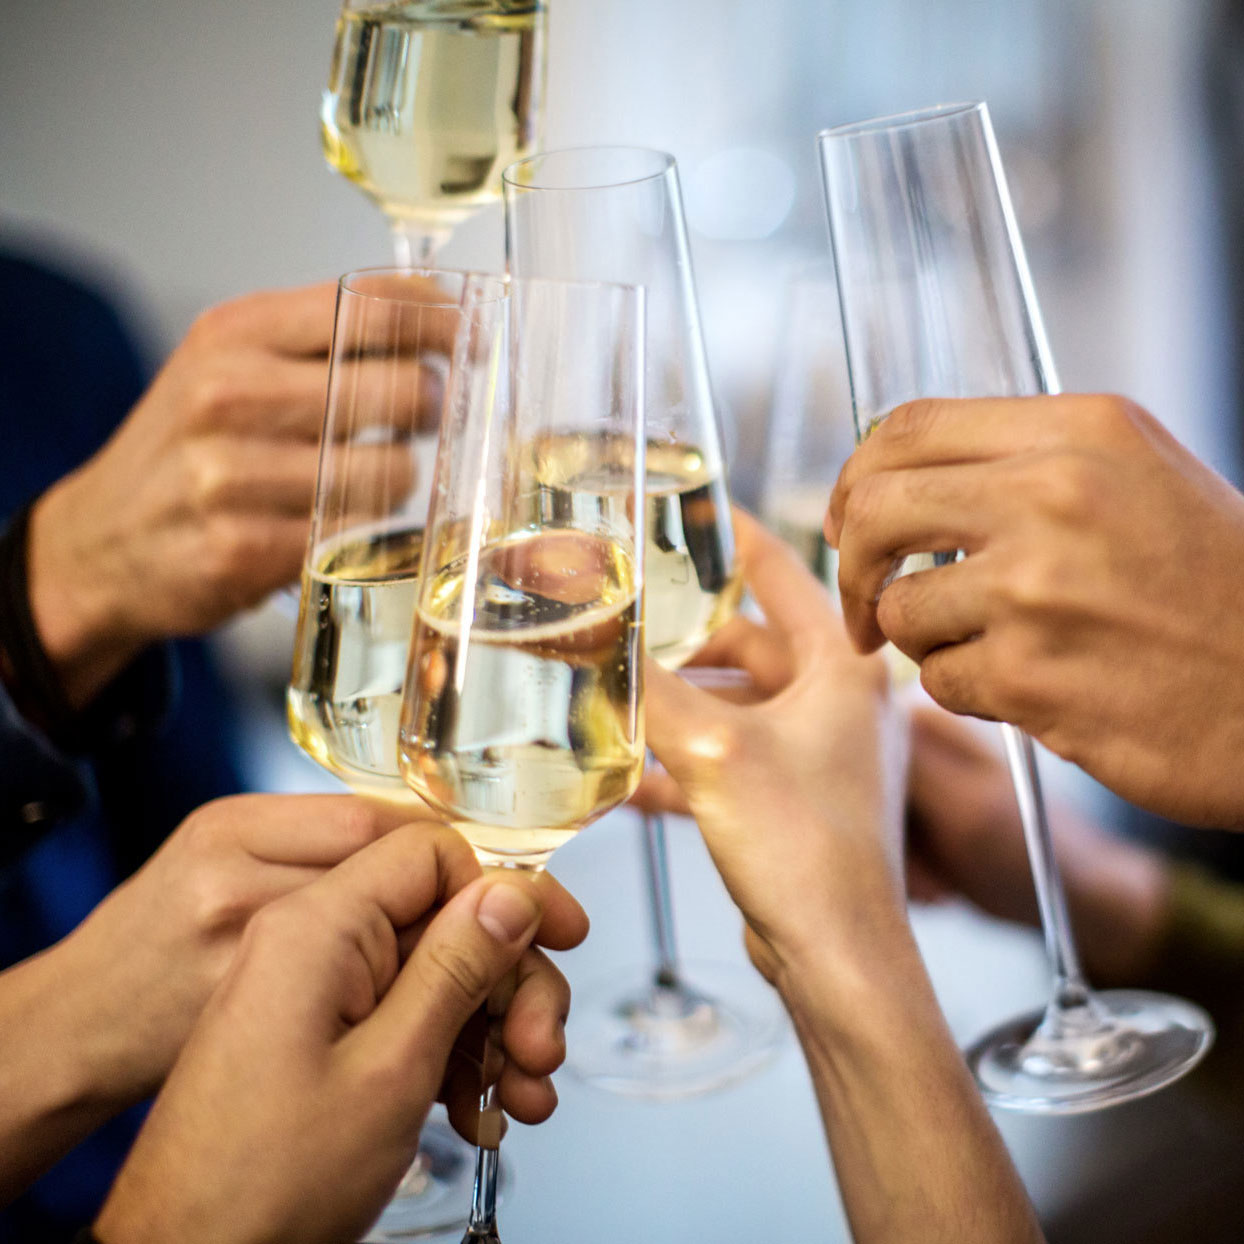 many hands toasting champagne flutes filled with champagne